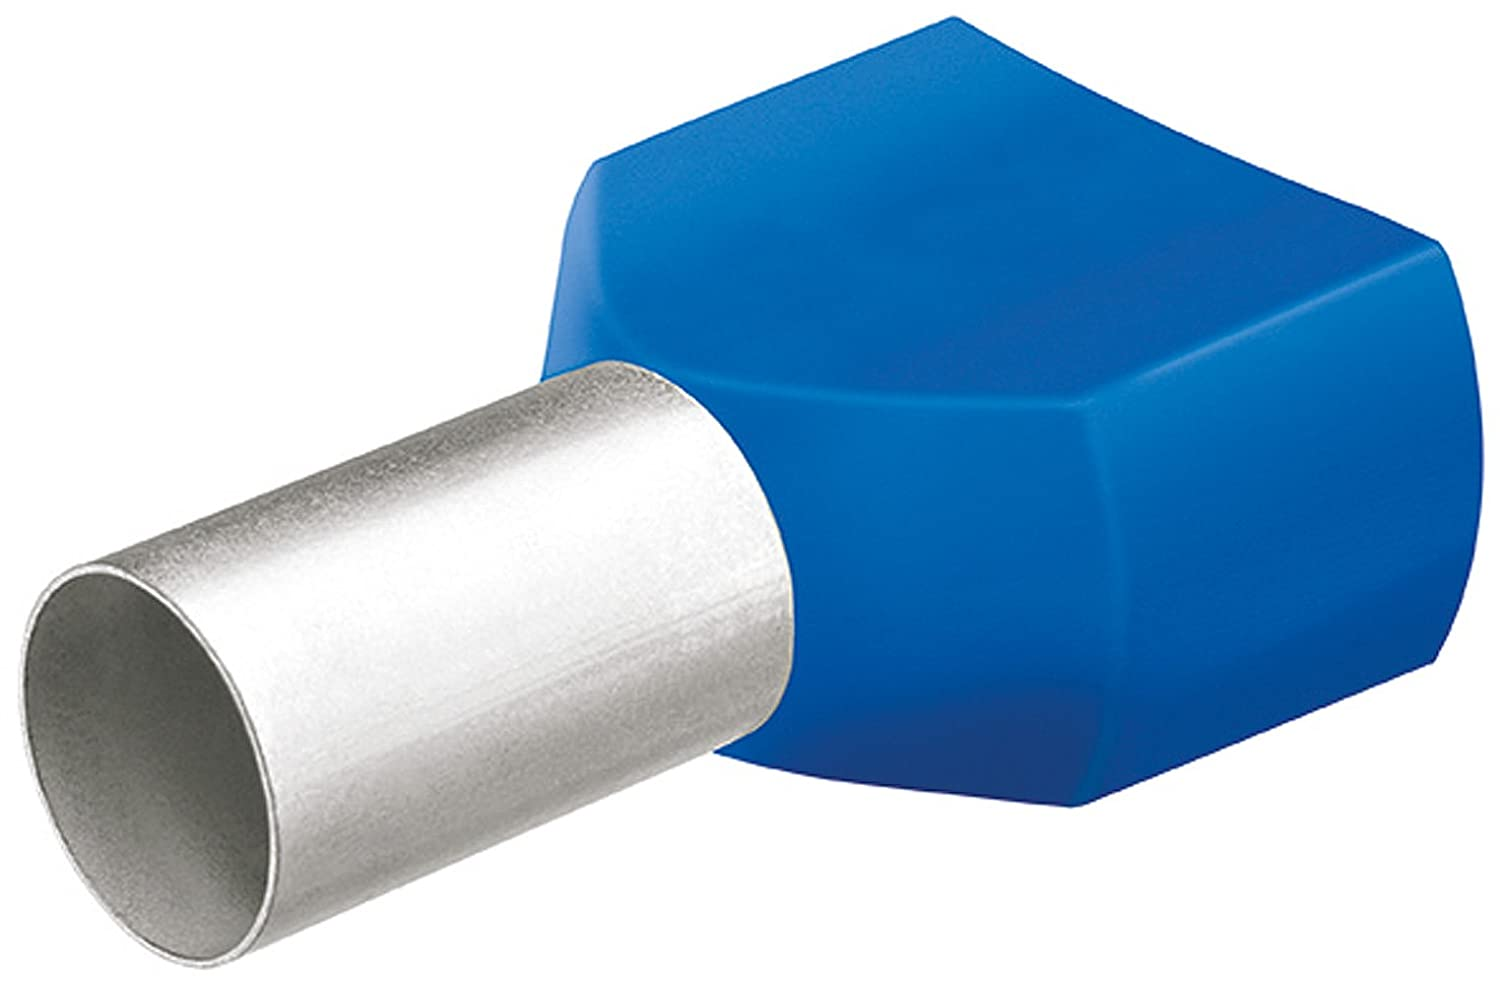 Knipex 97 99 374 Twin Wire-end ferrules with Plastic Collar, Blue